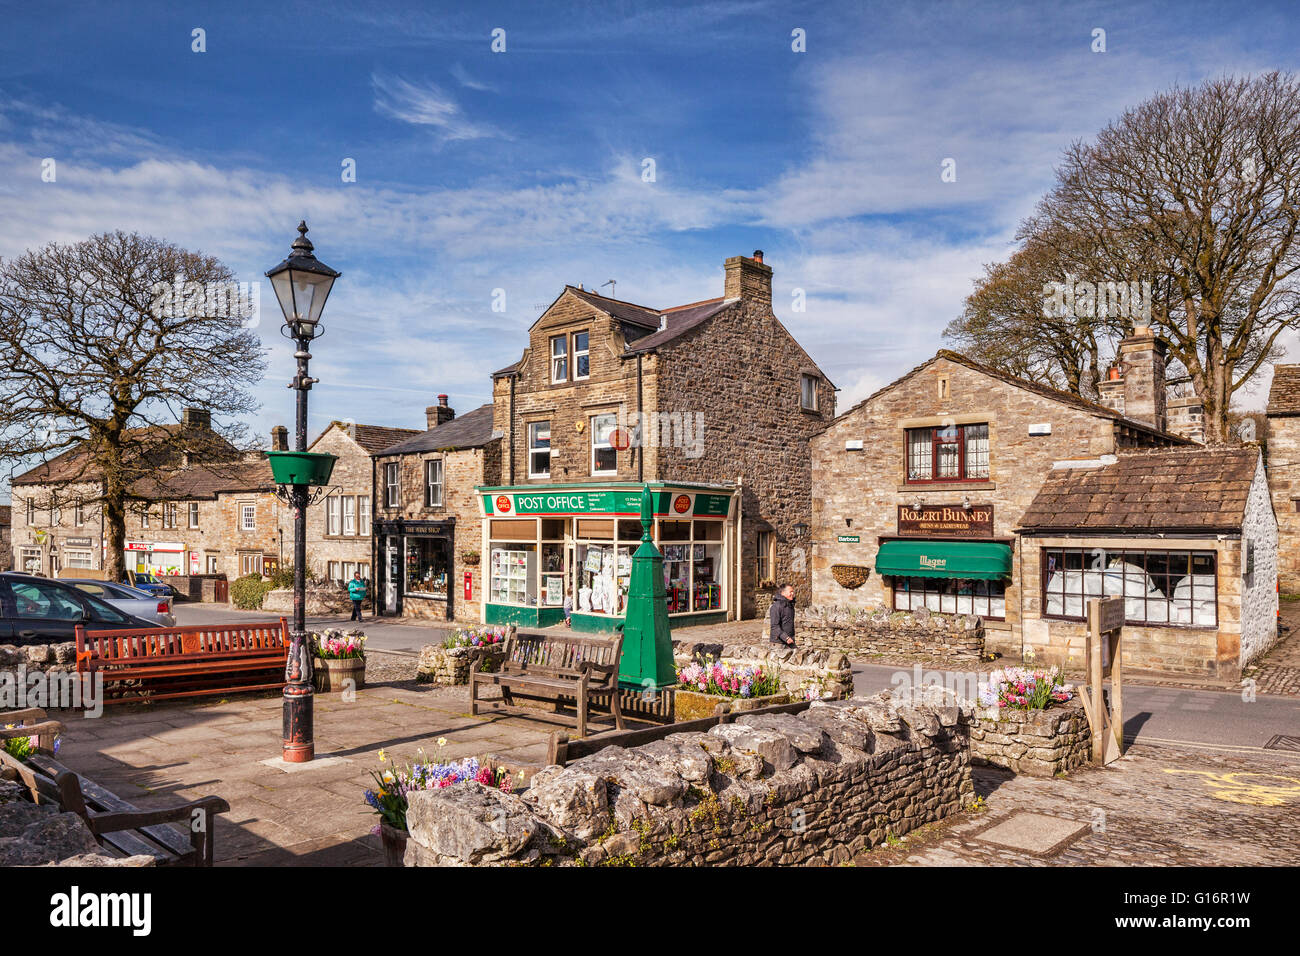 Grassington, one of the prettiest villages in the Yorkshire Dales National Park, North Yorkshire, England, UK - Stock Image